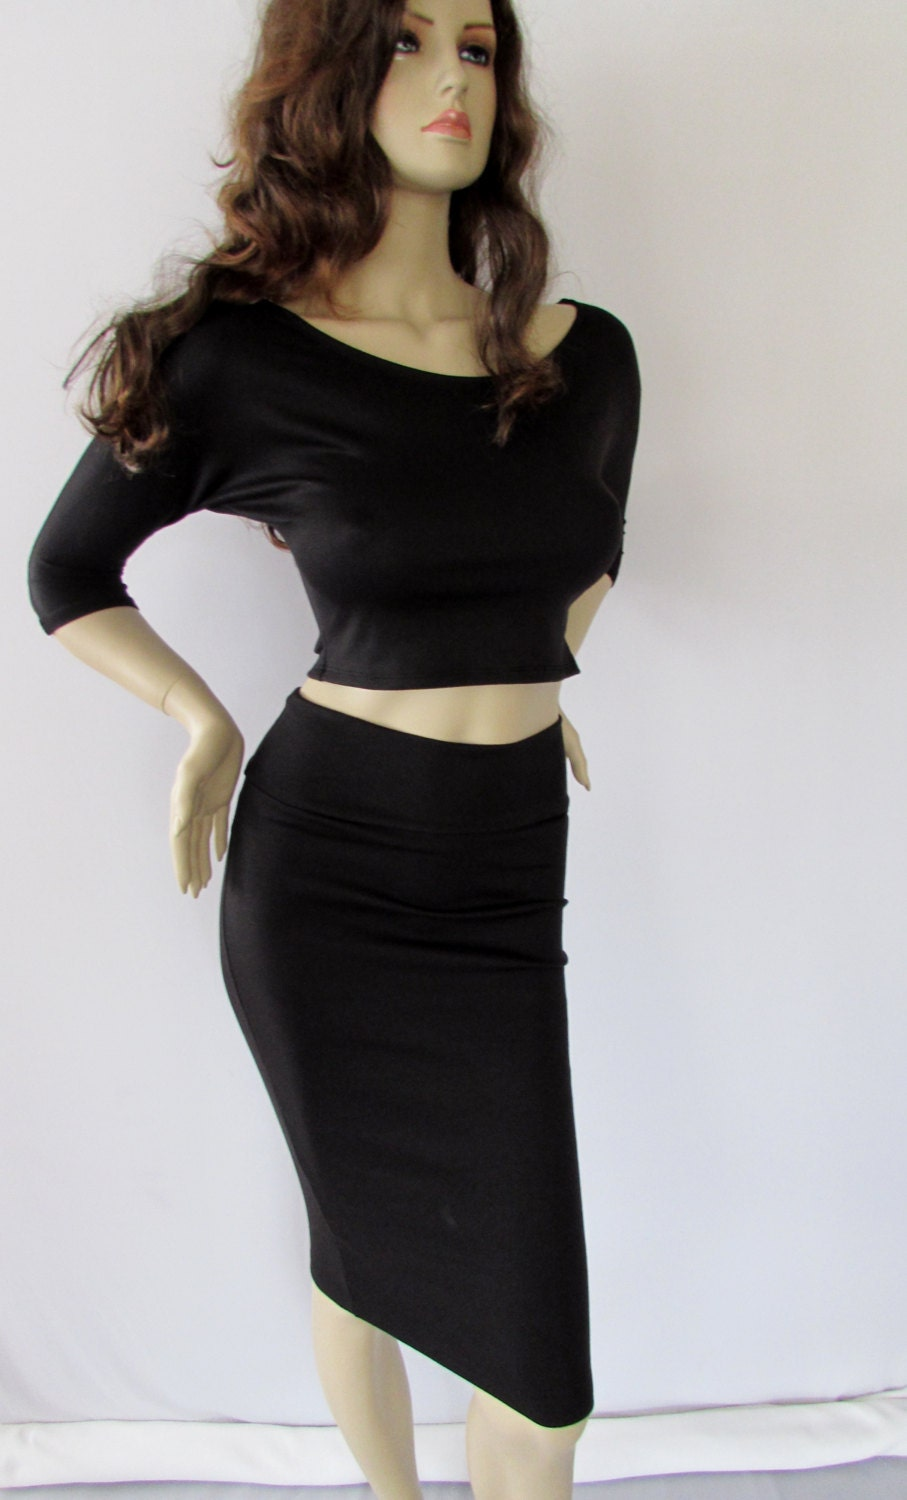 Whether you're looking for pencil skirts for a more sophisticated look or sexy mini skirts for a night out, bebe has the right skirt for every occasion. Choose from a variety of styles from sexy lace skirts to knit circle skirts and all the colors to match your next outfit, including black, white, pink, red and more!